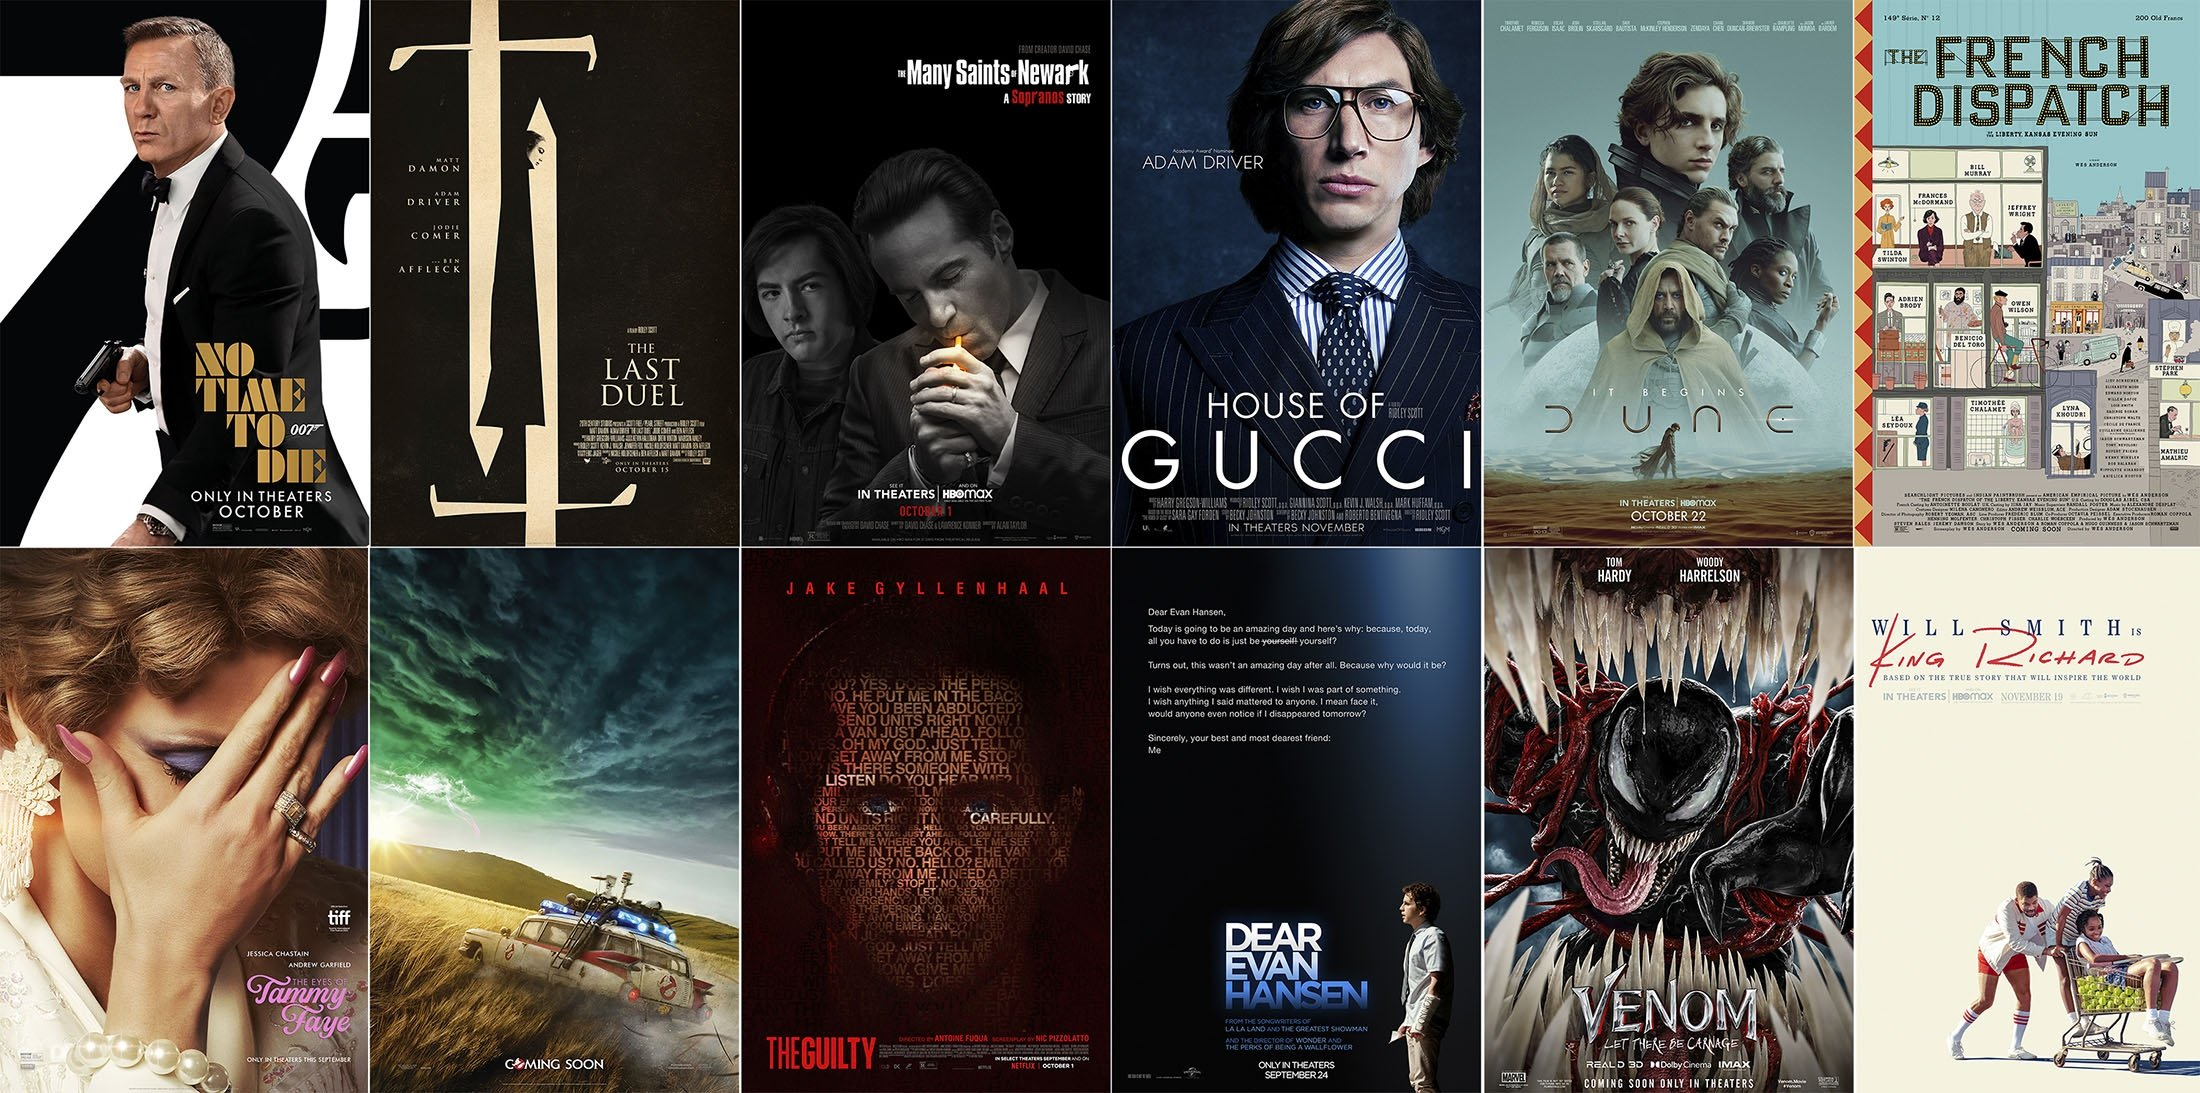 (L-R) Promotional art for upcoming films, 'No Time to Die,' 'The Last Duel,' 'The Many Saints of Newark,' 'House of Gucci,' 'Dune' and 'The French Dispatch,' and on the bottom row, 'The Eyes of Tammy Faye,' 'Ghostbusters: Afterlife,' 'The Guilty,' 'Dear Evan Hansen,' 'Venom: Let There Be Carnage,' and 'King Richard.' (Top row from left, MGM/20th Century Studios/Warner Bros-HBO Max/MGM/Warner Bros. Pictures/Searchlight Pictures, bottom row from left, Searchlight Pictures/Sony Pictures/Netflix/ Universal/Sony Pictures/Warner Bros Pictures via AP)